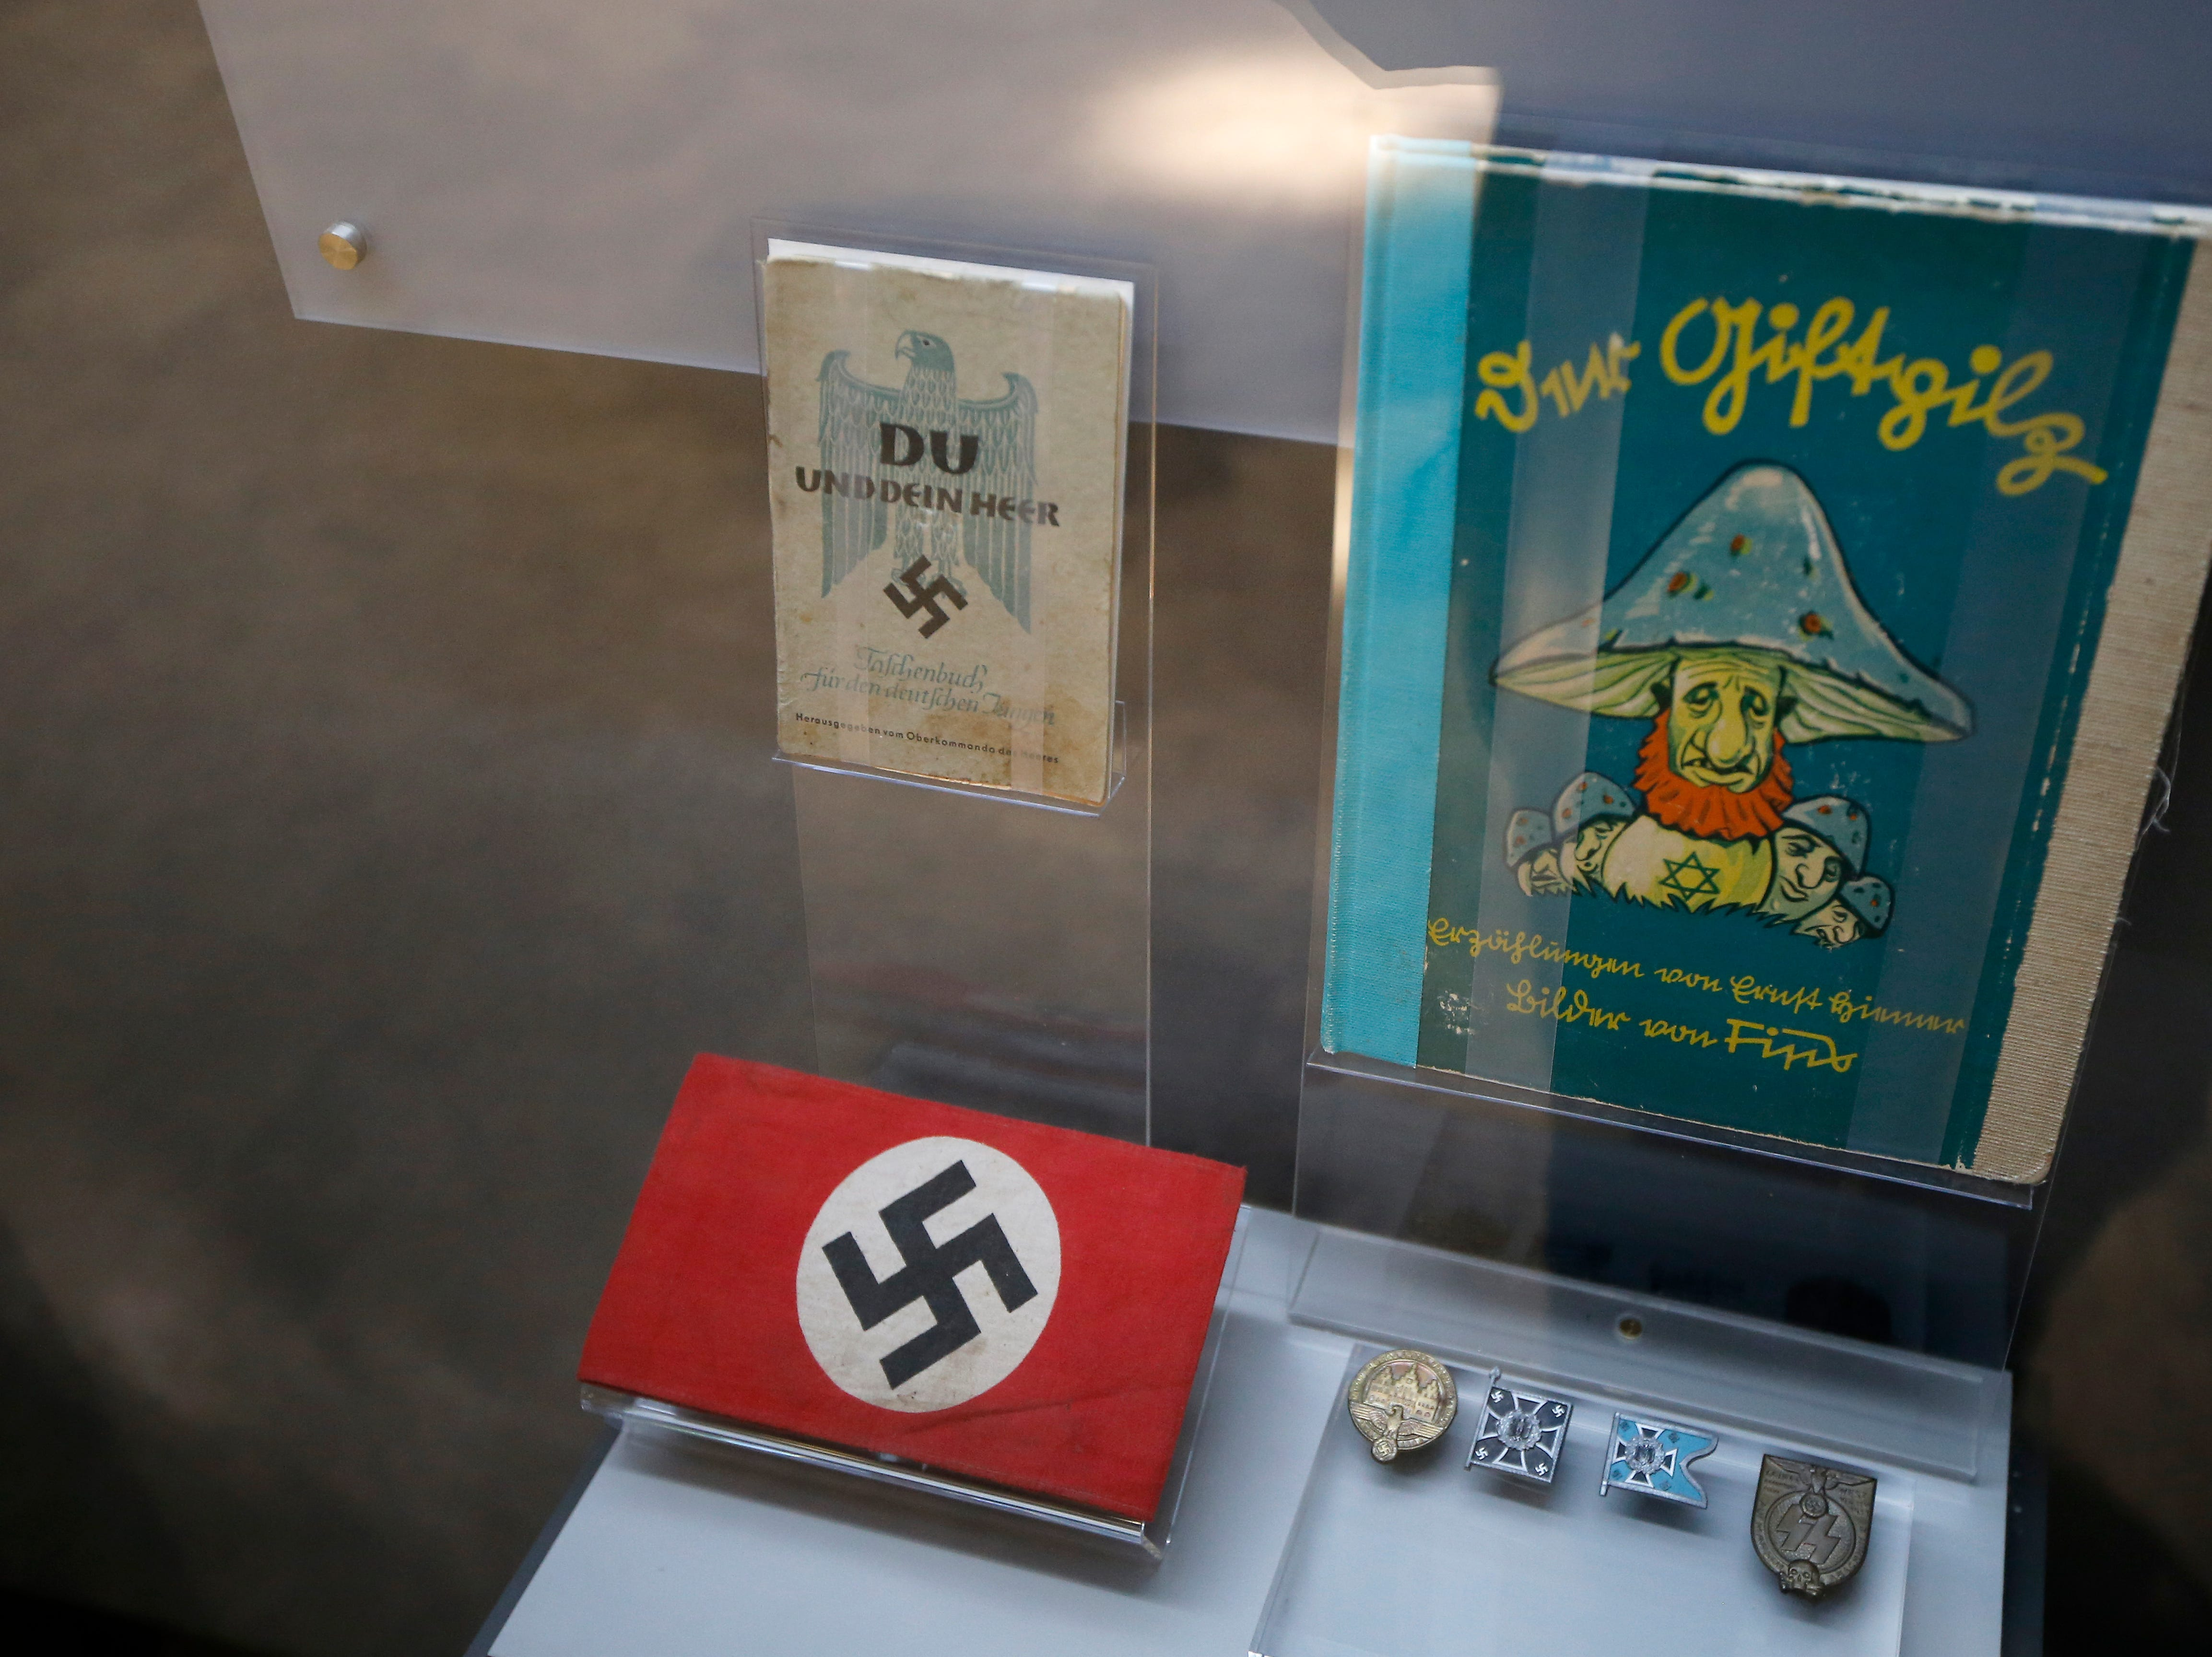 Nazi artifacts are displayed in the new Holocaust and Humanity Center at the Cincinnati Museum Center in the Queensgate neighborhood of Cincinnati on Tuesday, Jan. 22, 2019. The new exhibit covering the events before, during and after the Holocaust will be open to the public Jan. 27.